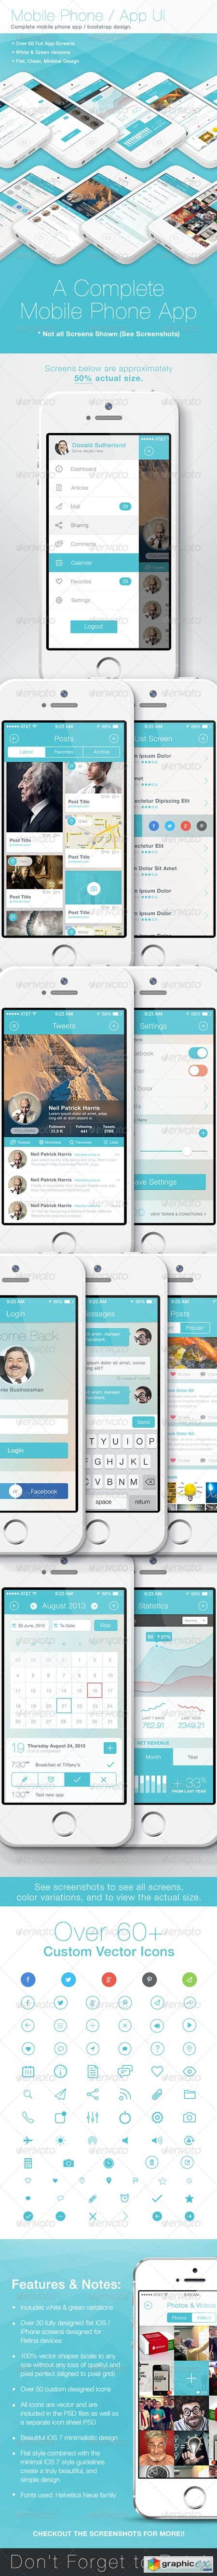 Flat Phone Mobile App Bootstrap UI 5543620